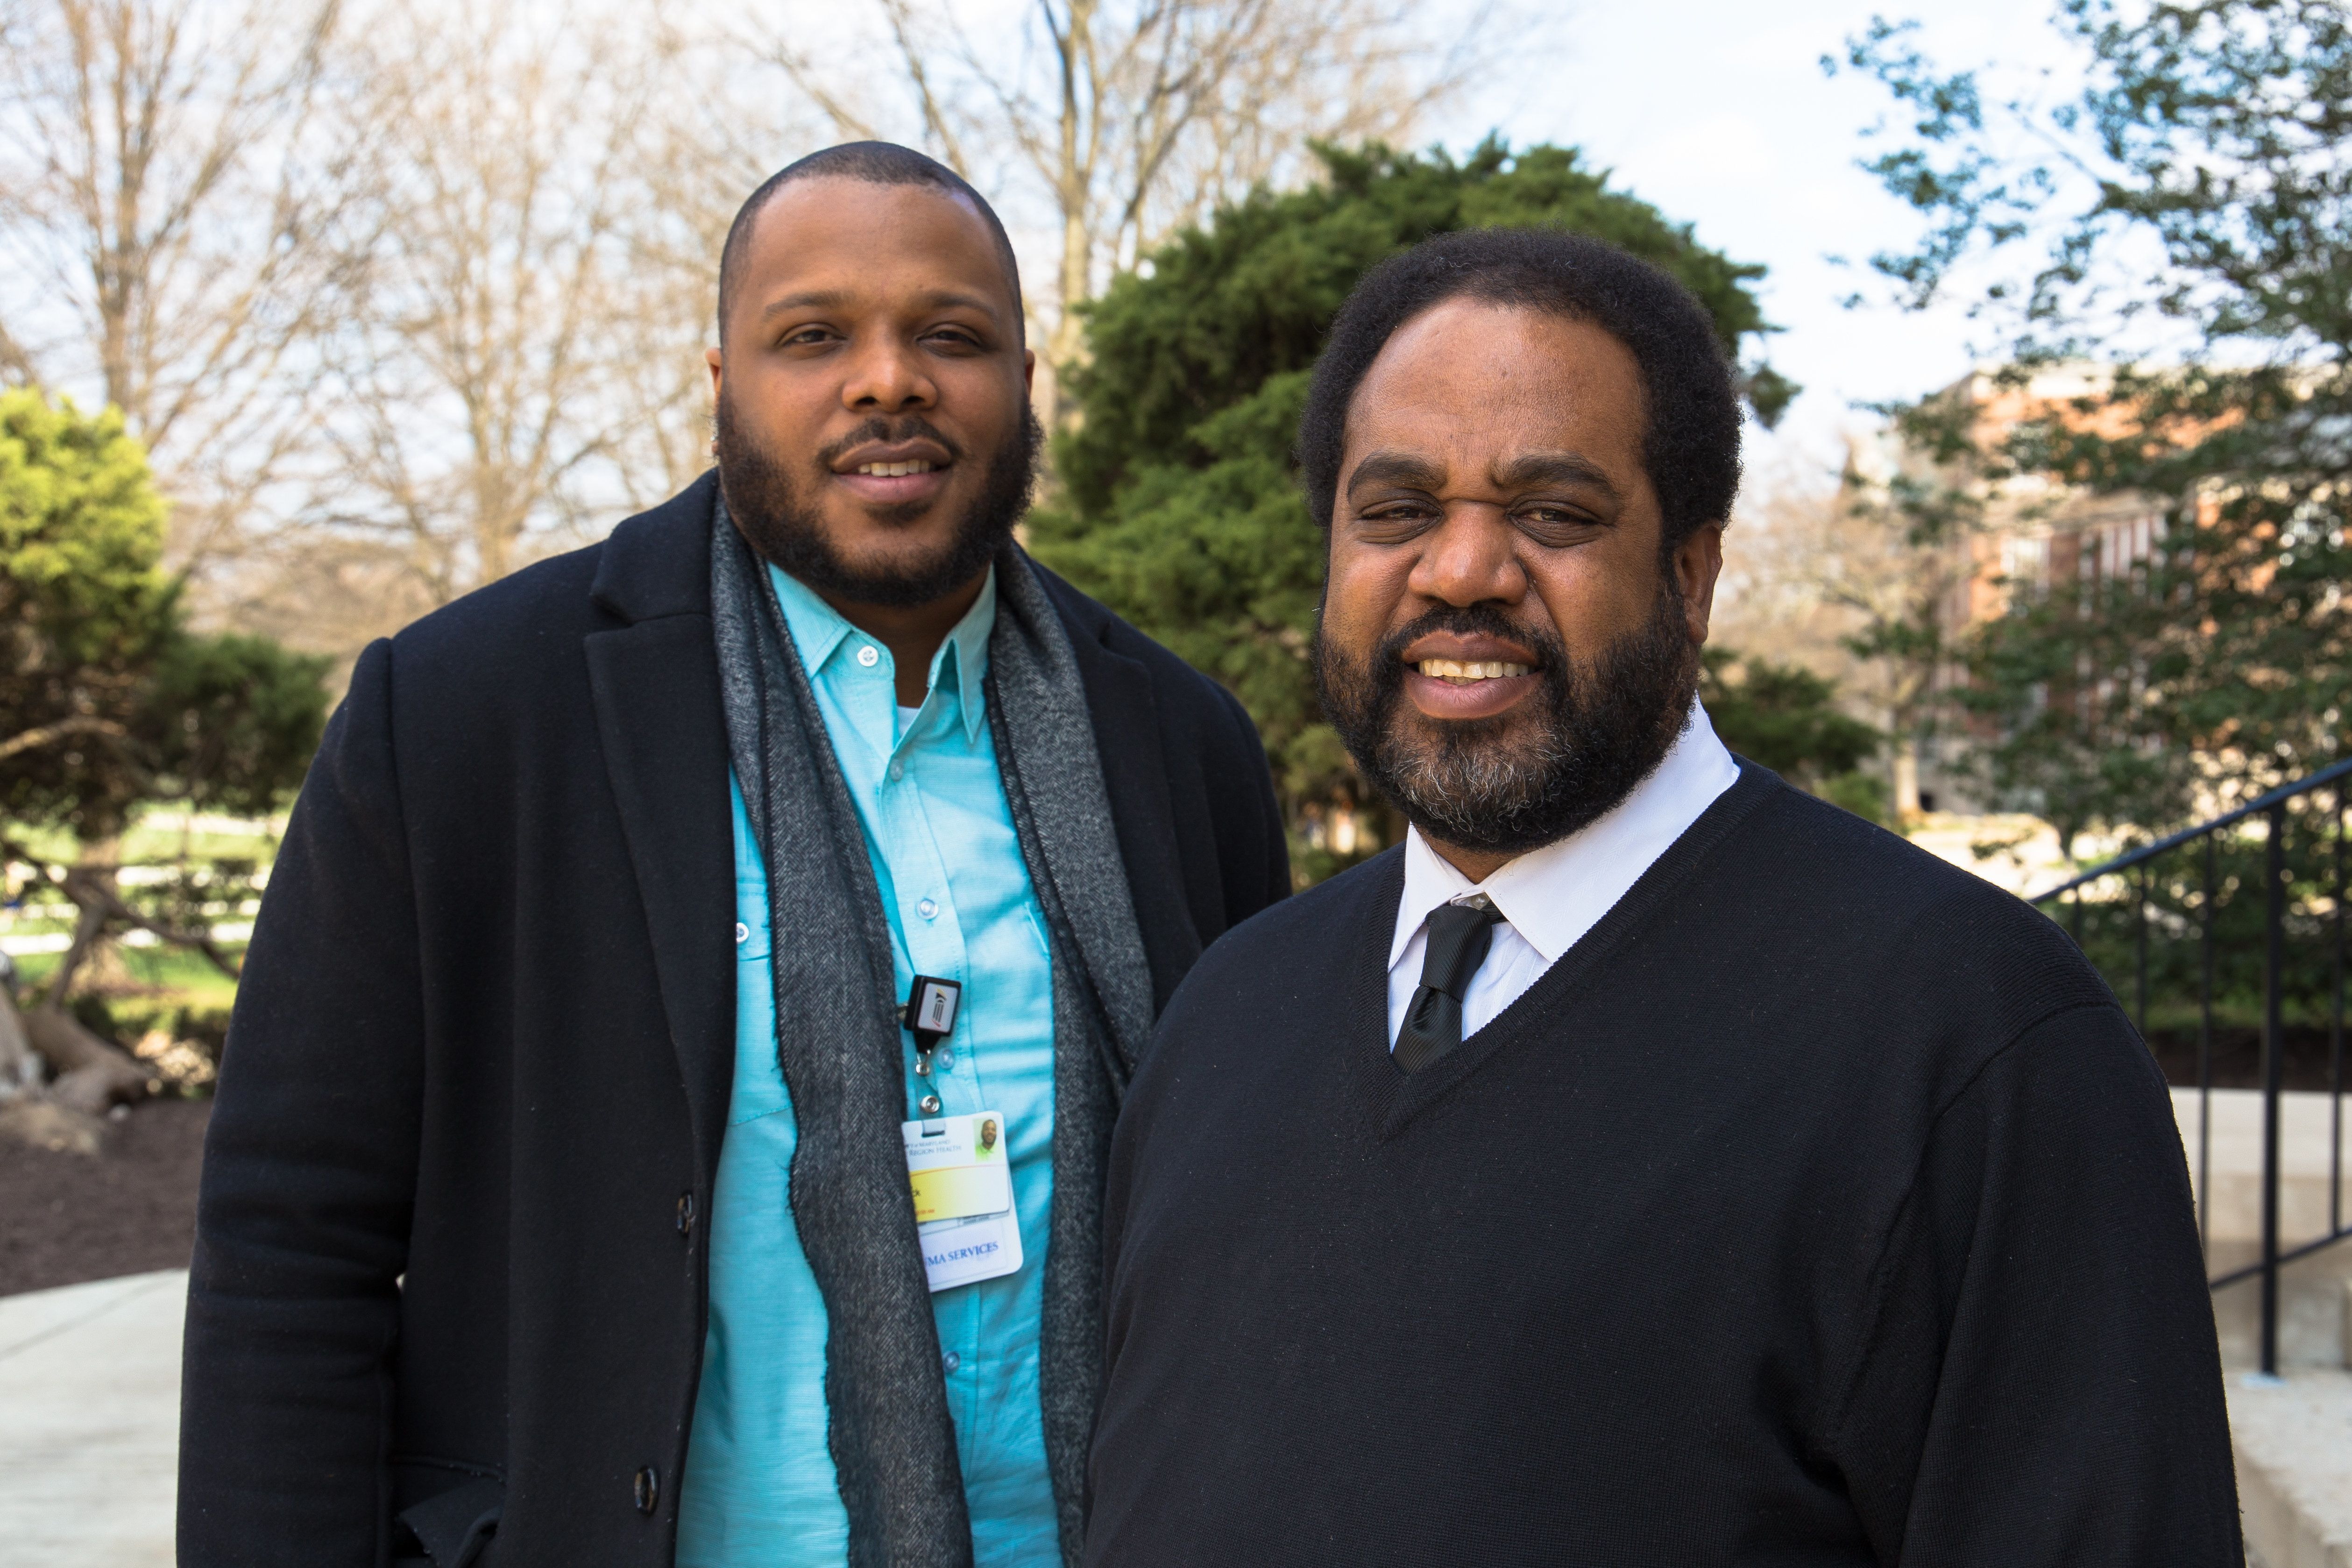 Che Bullock, left, and Joseph Richardson Jr.are helping patients find a path away from violence through their work at t